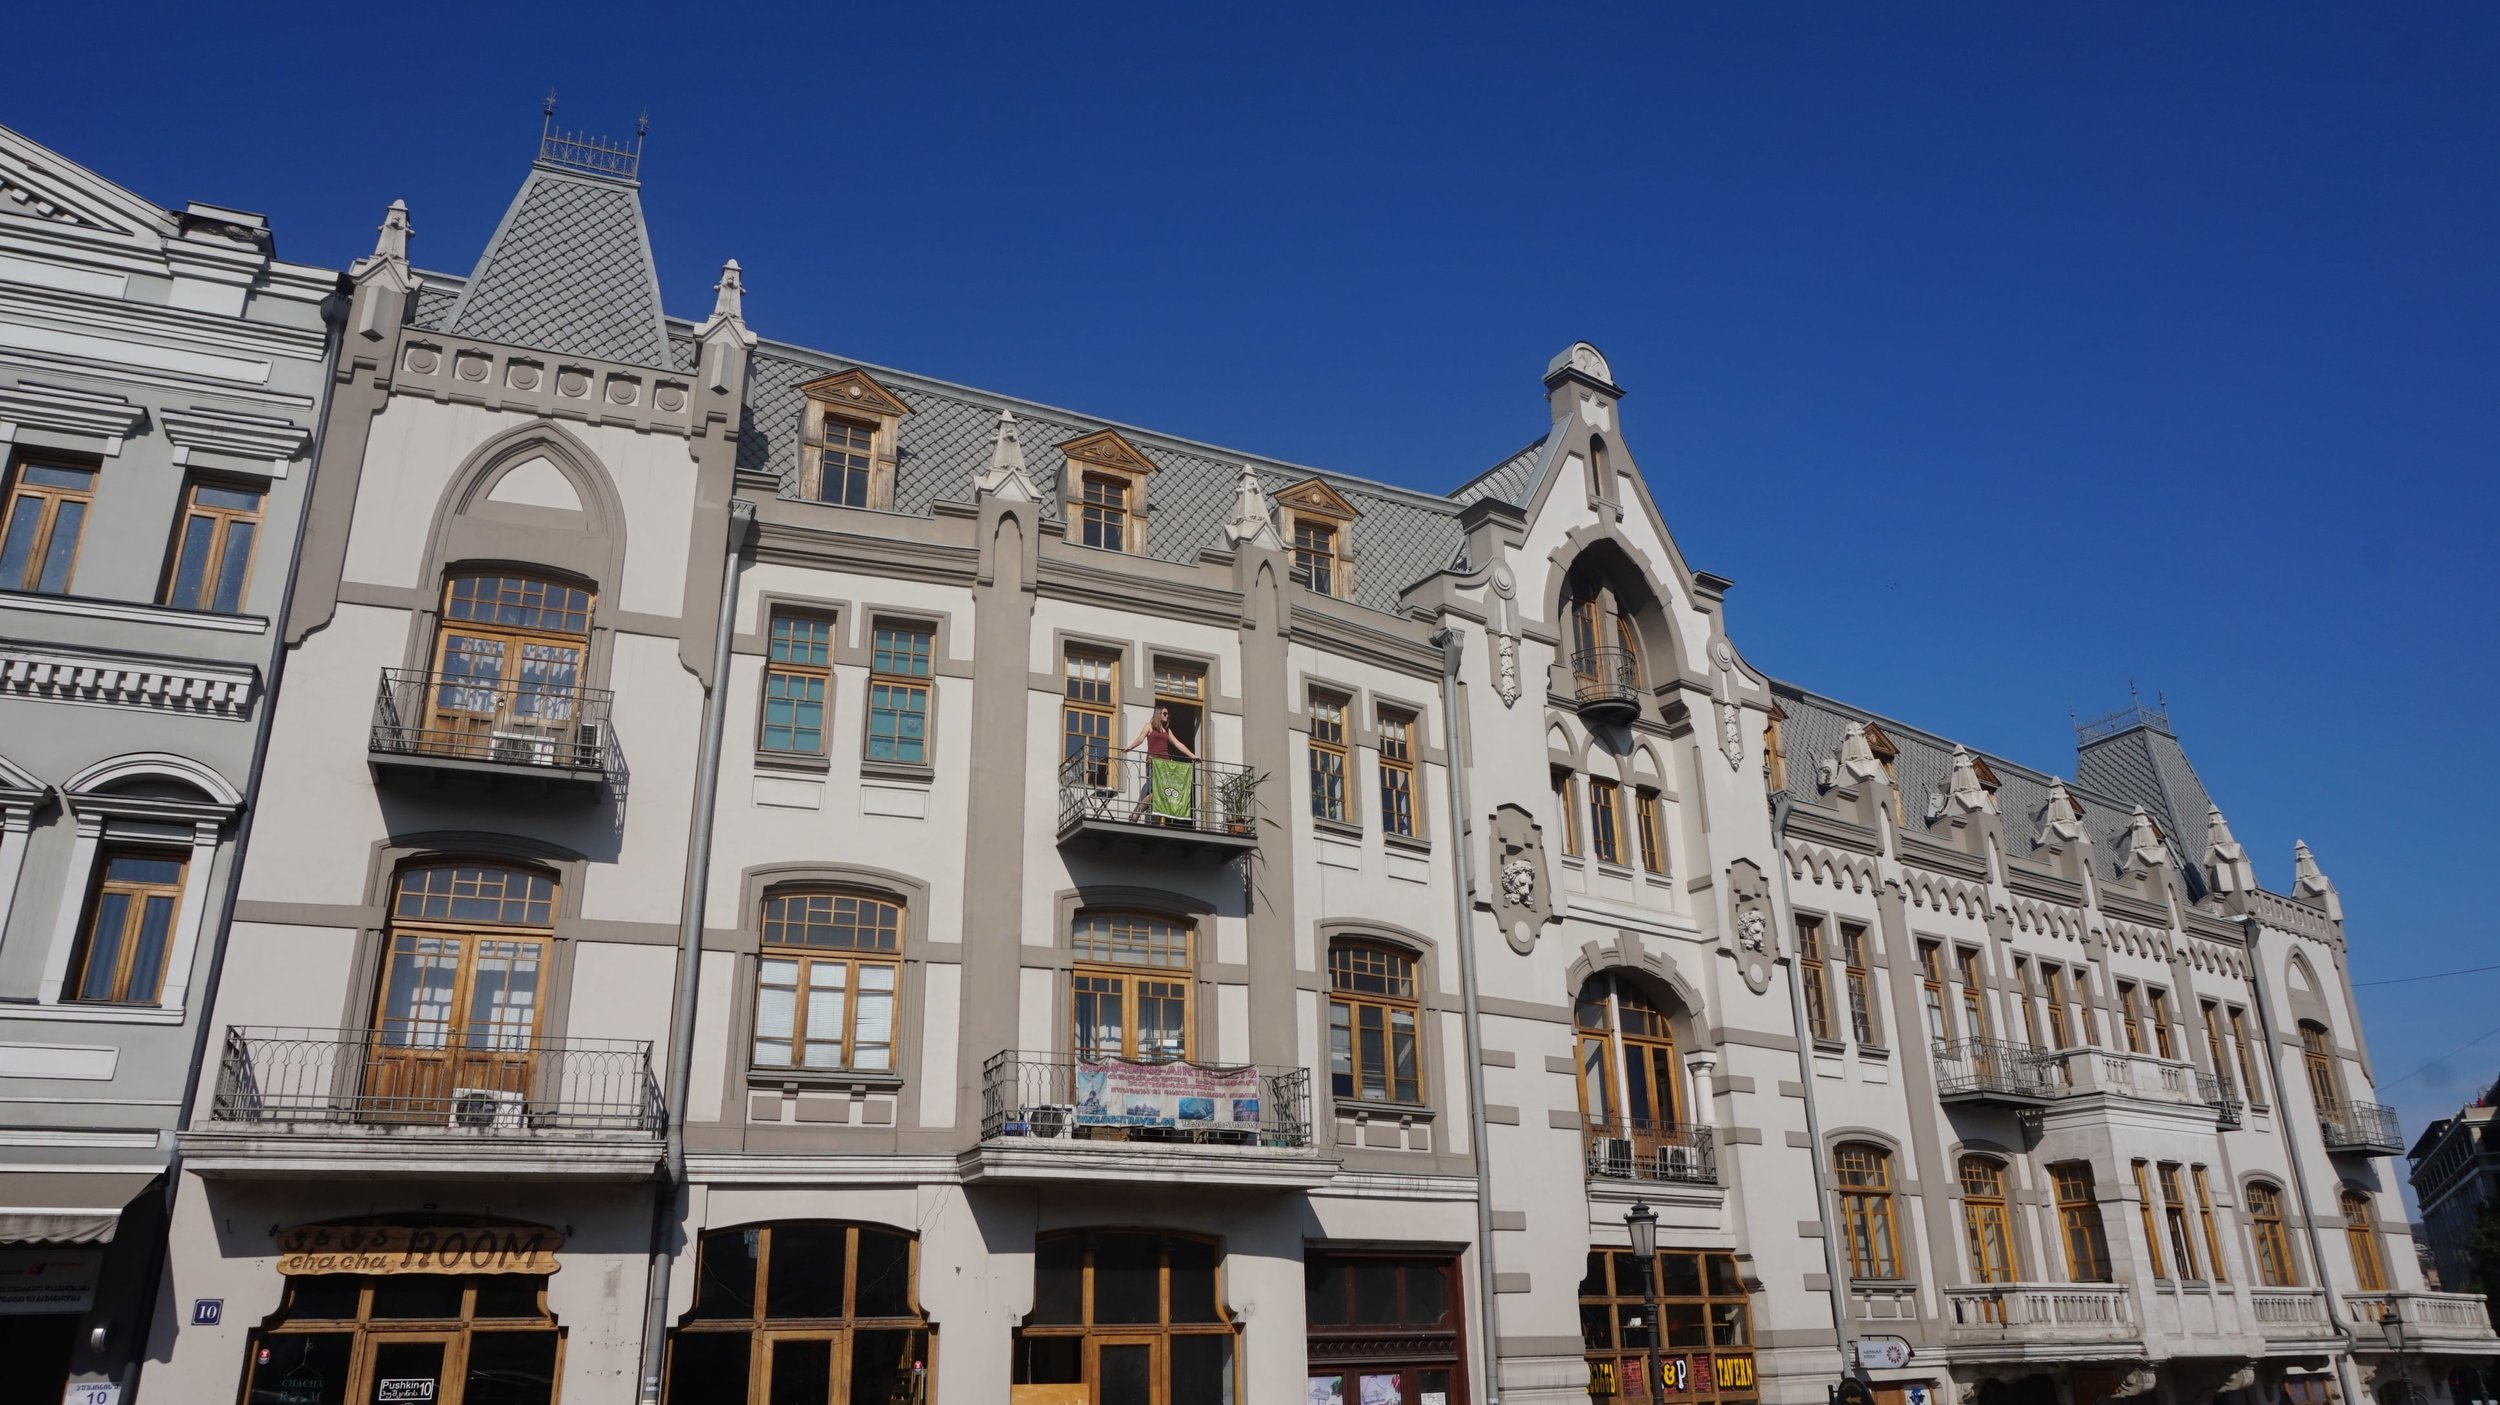 Pushkin 10 is one of the best hostels in Tbilisi. Best accommodation in Tbilisi.